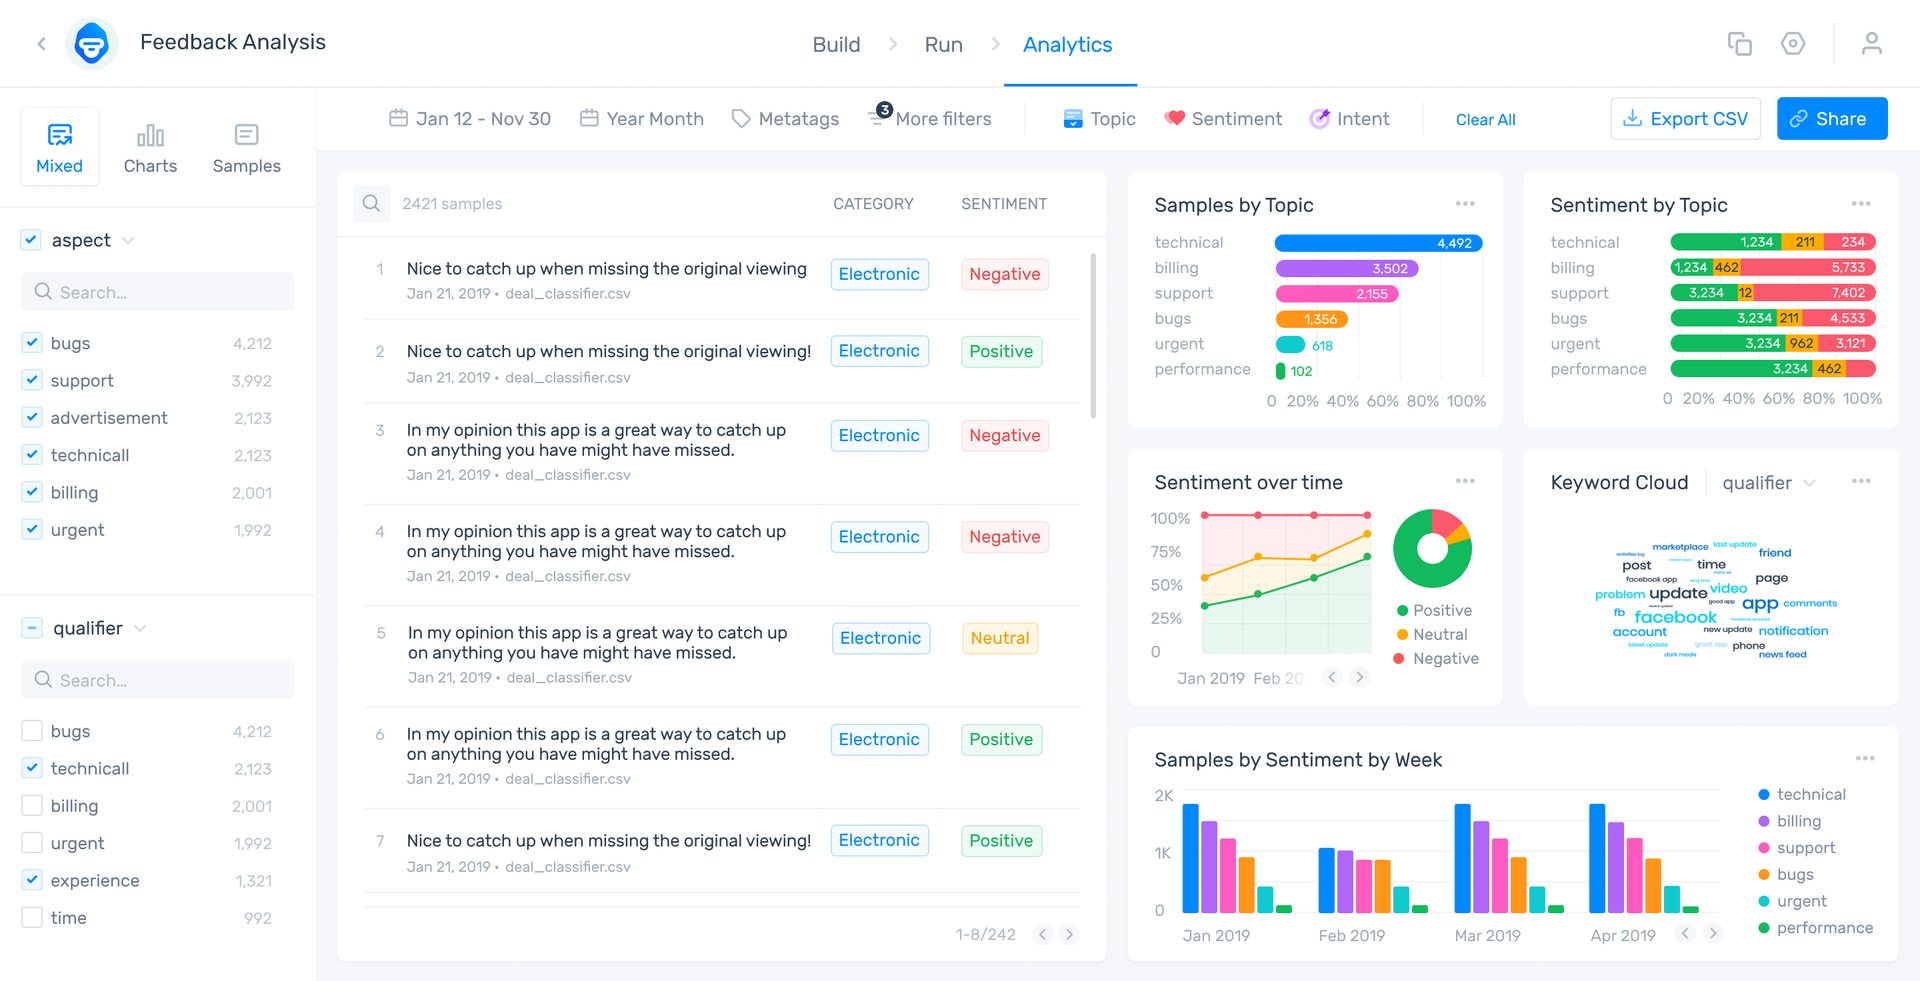 MonkeyLearn Studio showing sentiment around different topics in customer feedback. Filter by bugs, support, and more, to analyze data in minute detail.